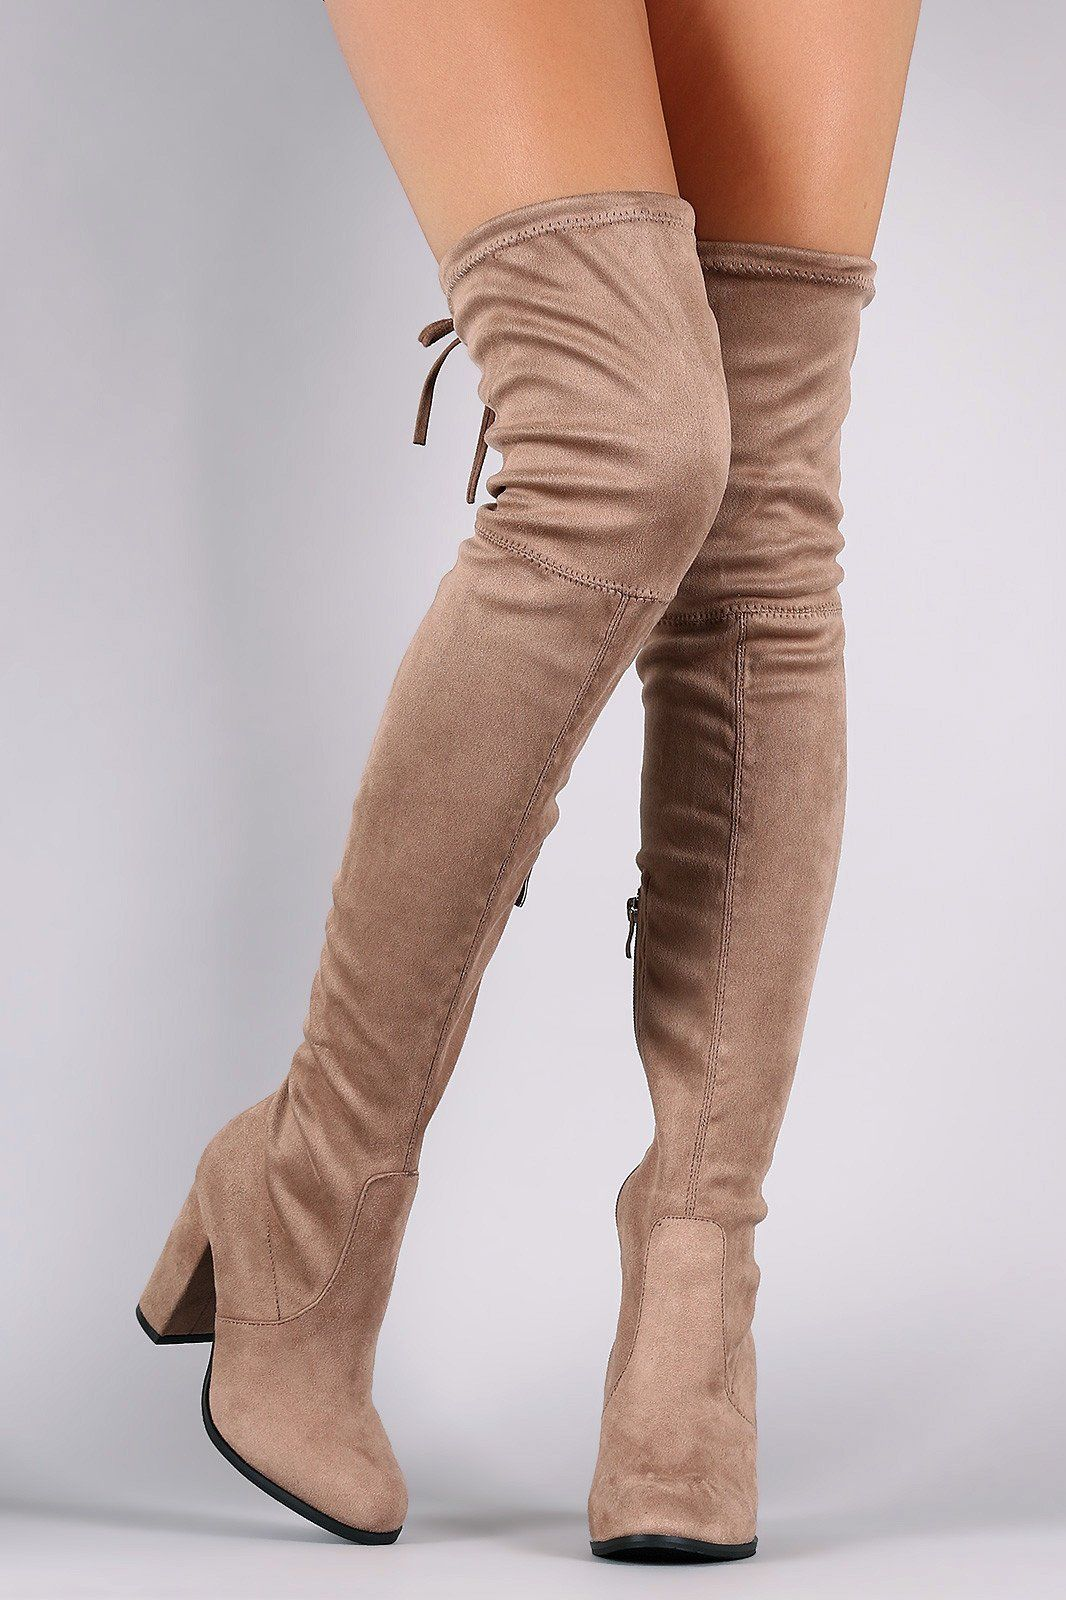 bfb1748b7277 Over-The-Knee Suede Almond Toe Self-Tie Back Boots